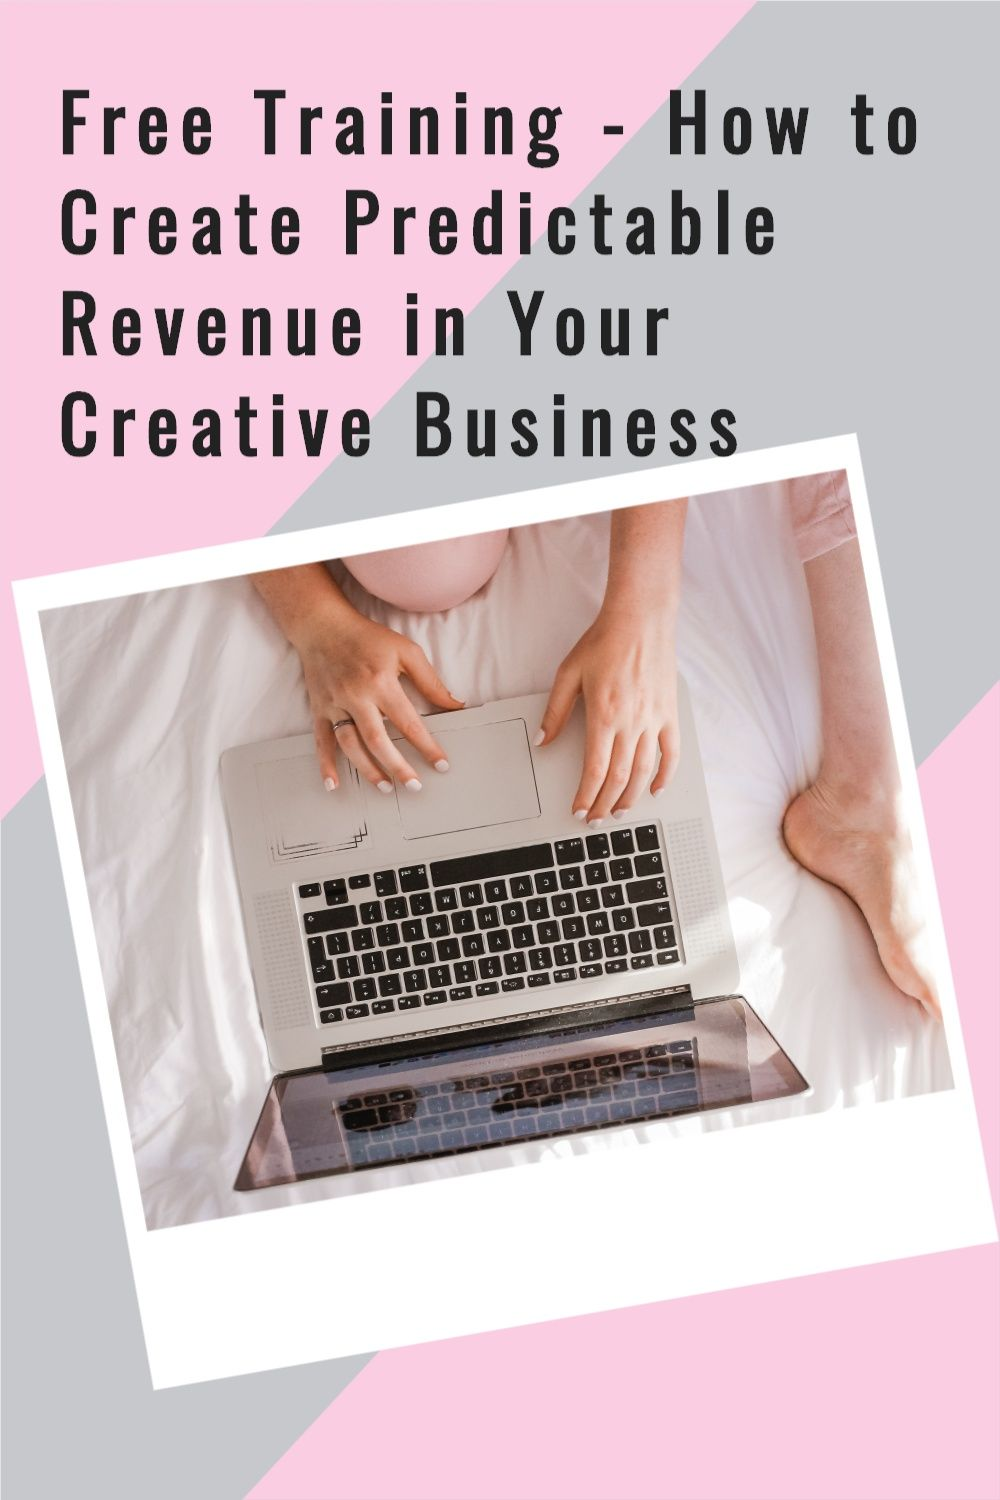 Are you a creative business side-hustler but struggle with creating consistent revenue for yourself? Join the free training where I share 3 simple steps to growing your creative business #creativebusiness #creativeentrepreneur #sidehustle